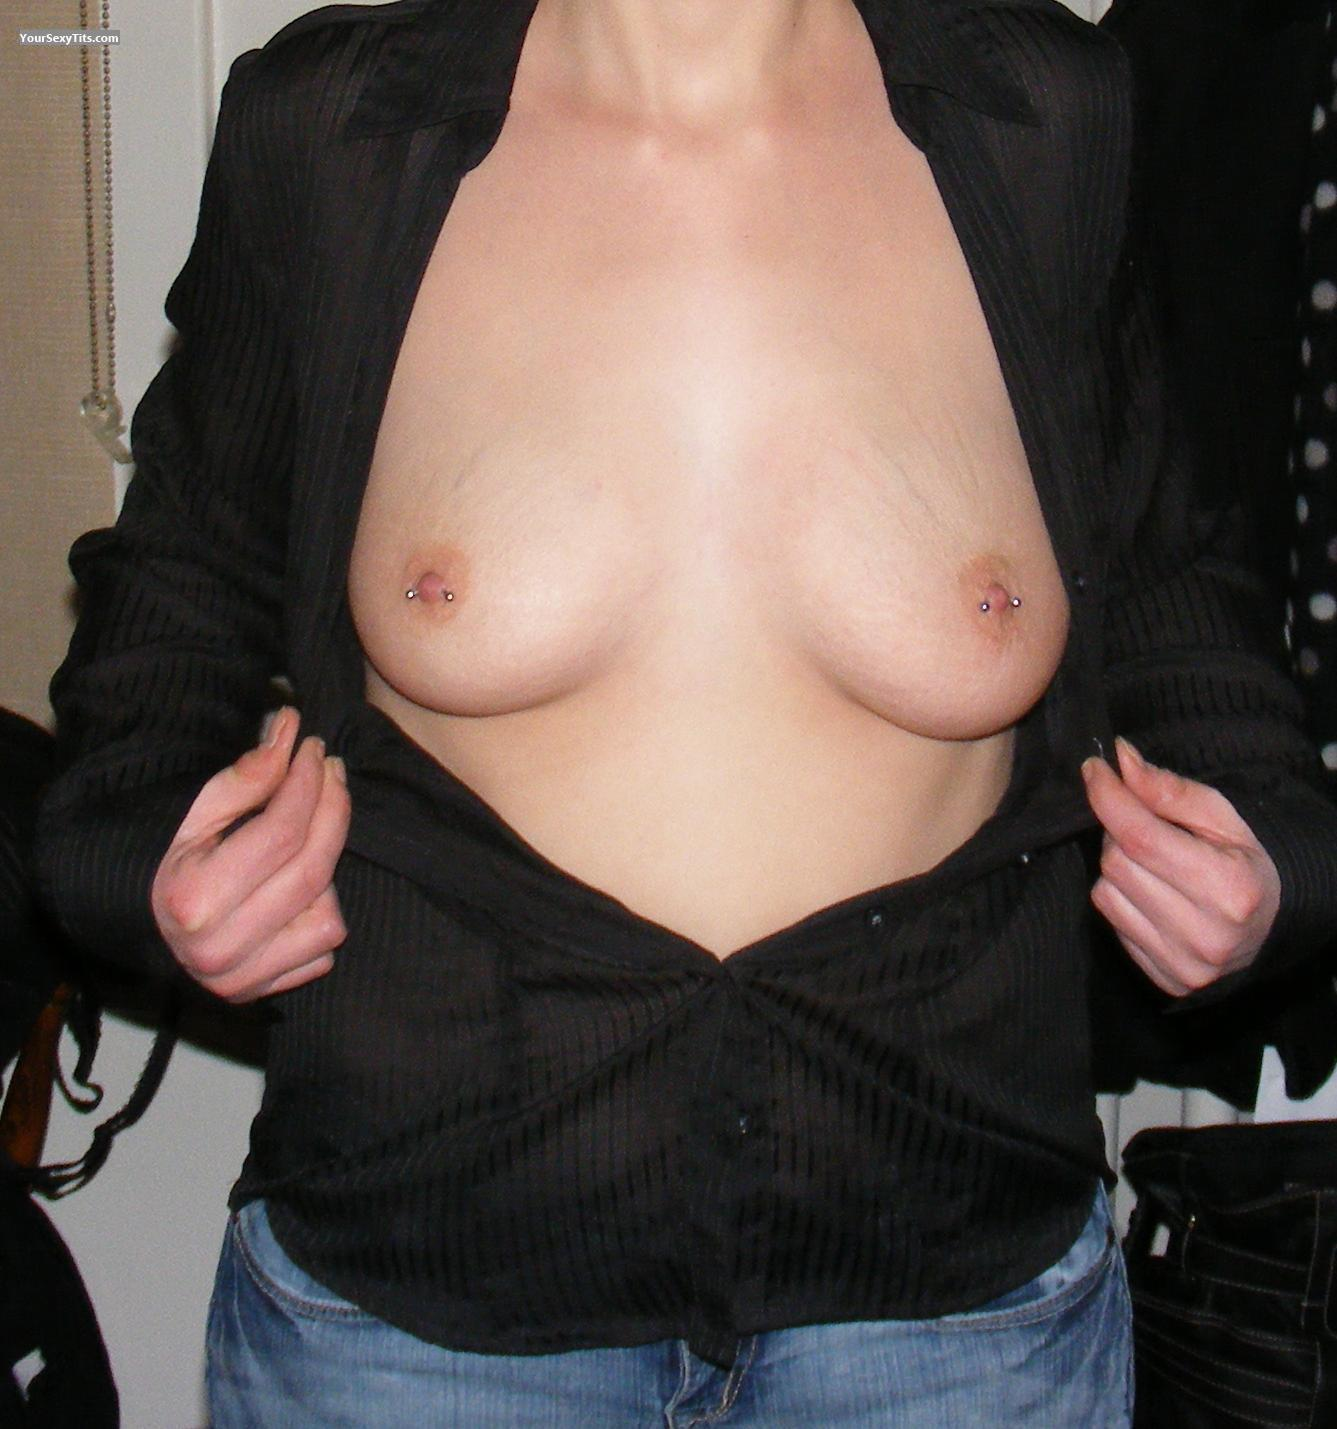 Small Tits Of My Girlfriend Billy78